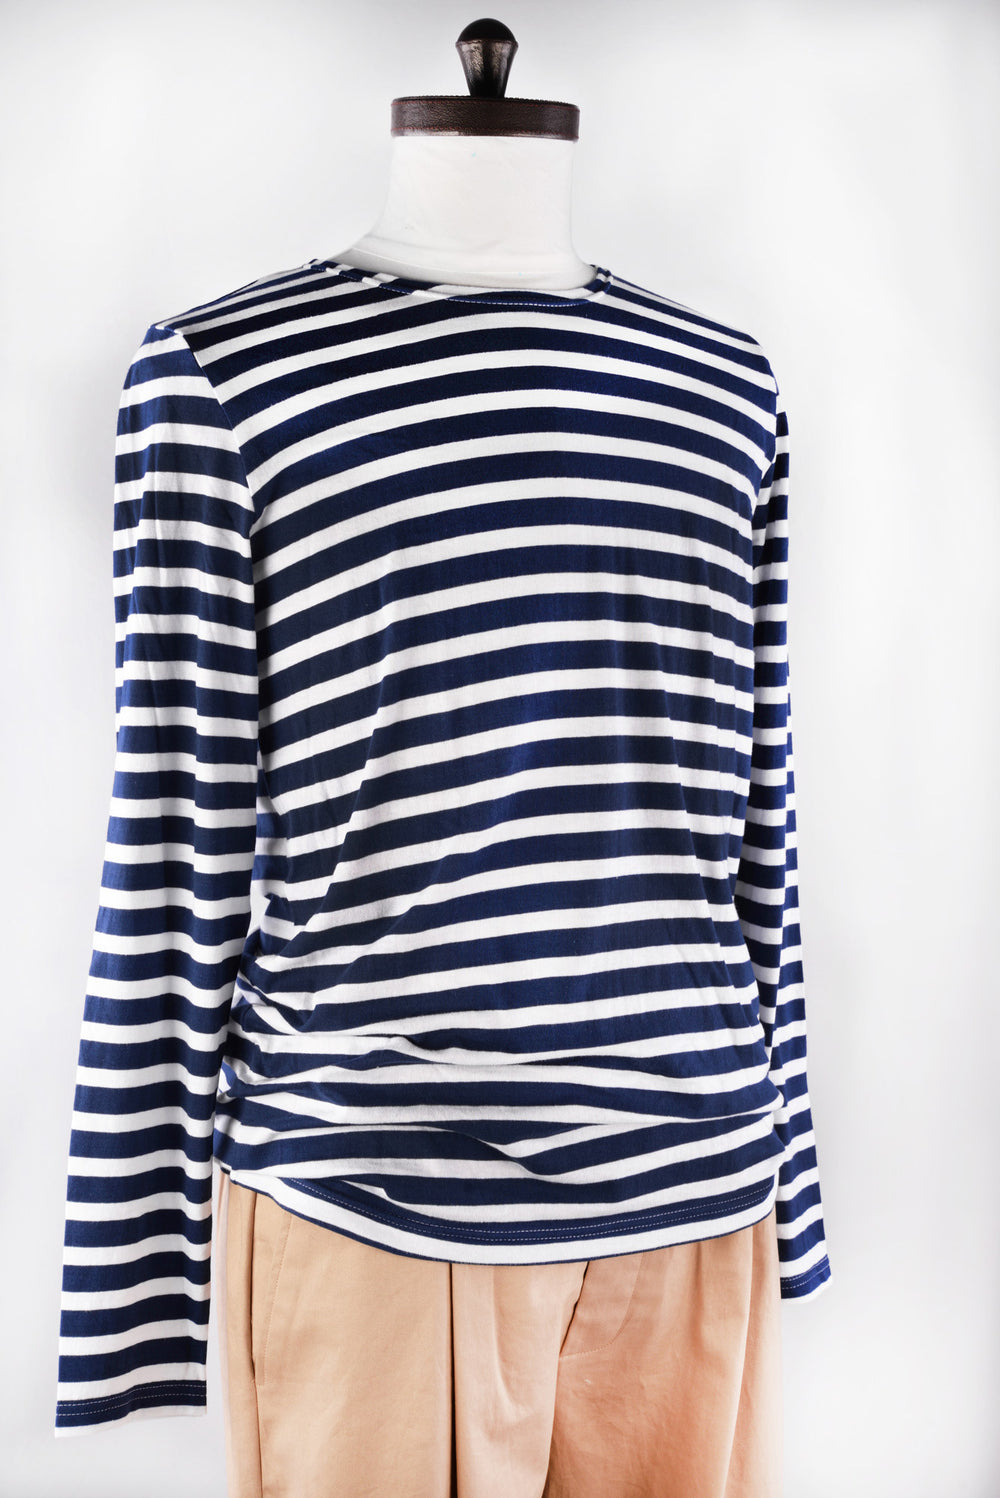 Navy white Striped T-Shirt (992115396)